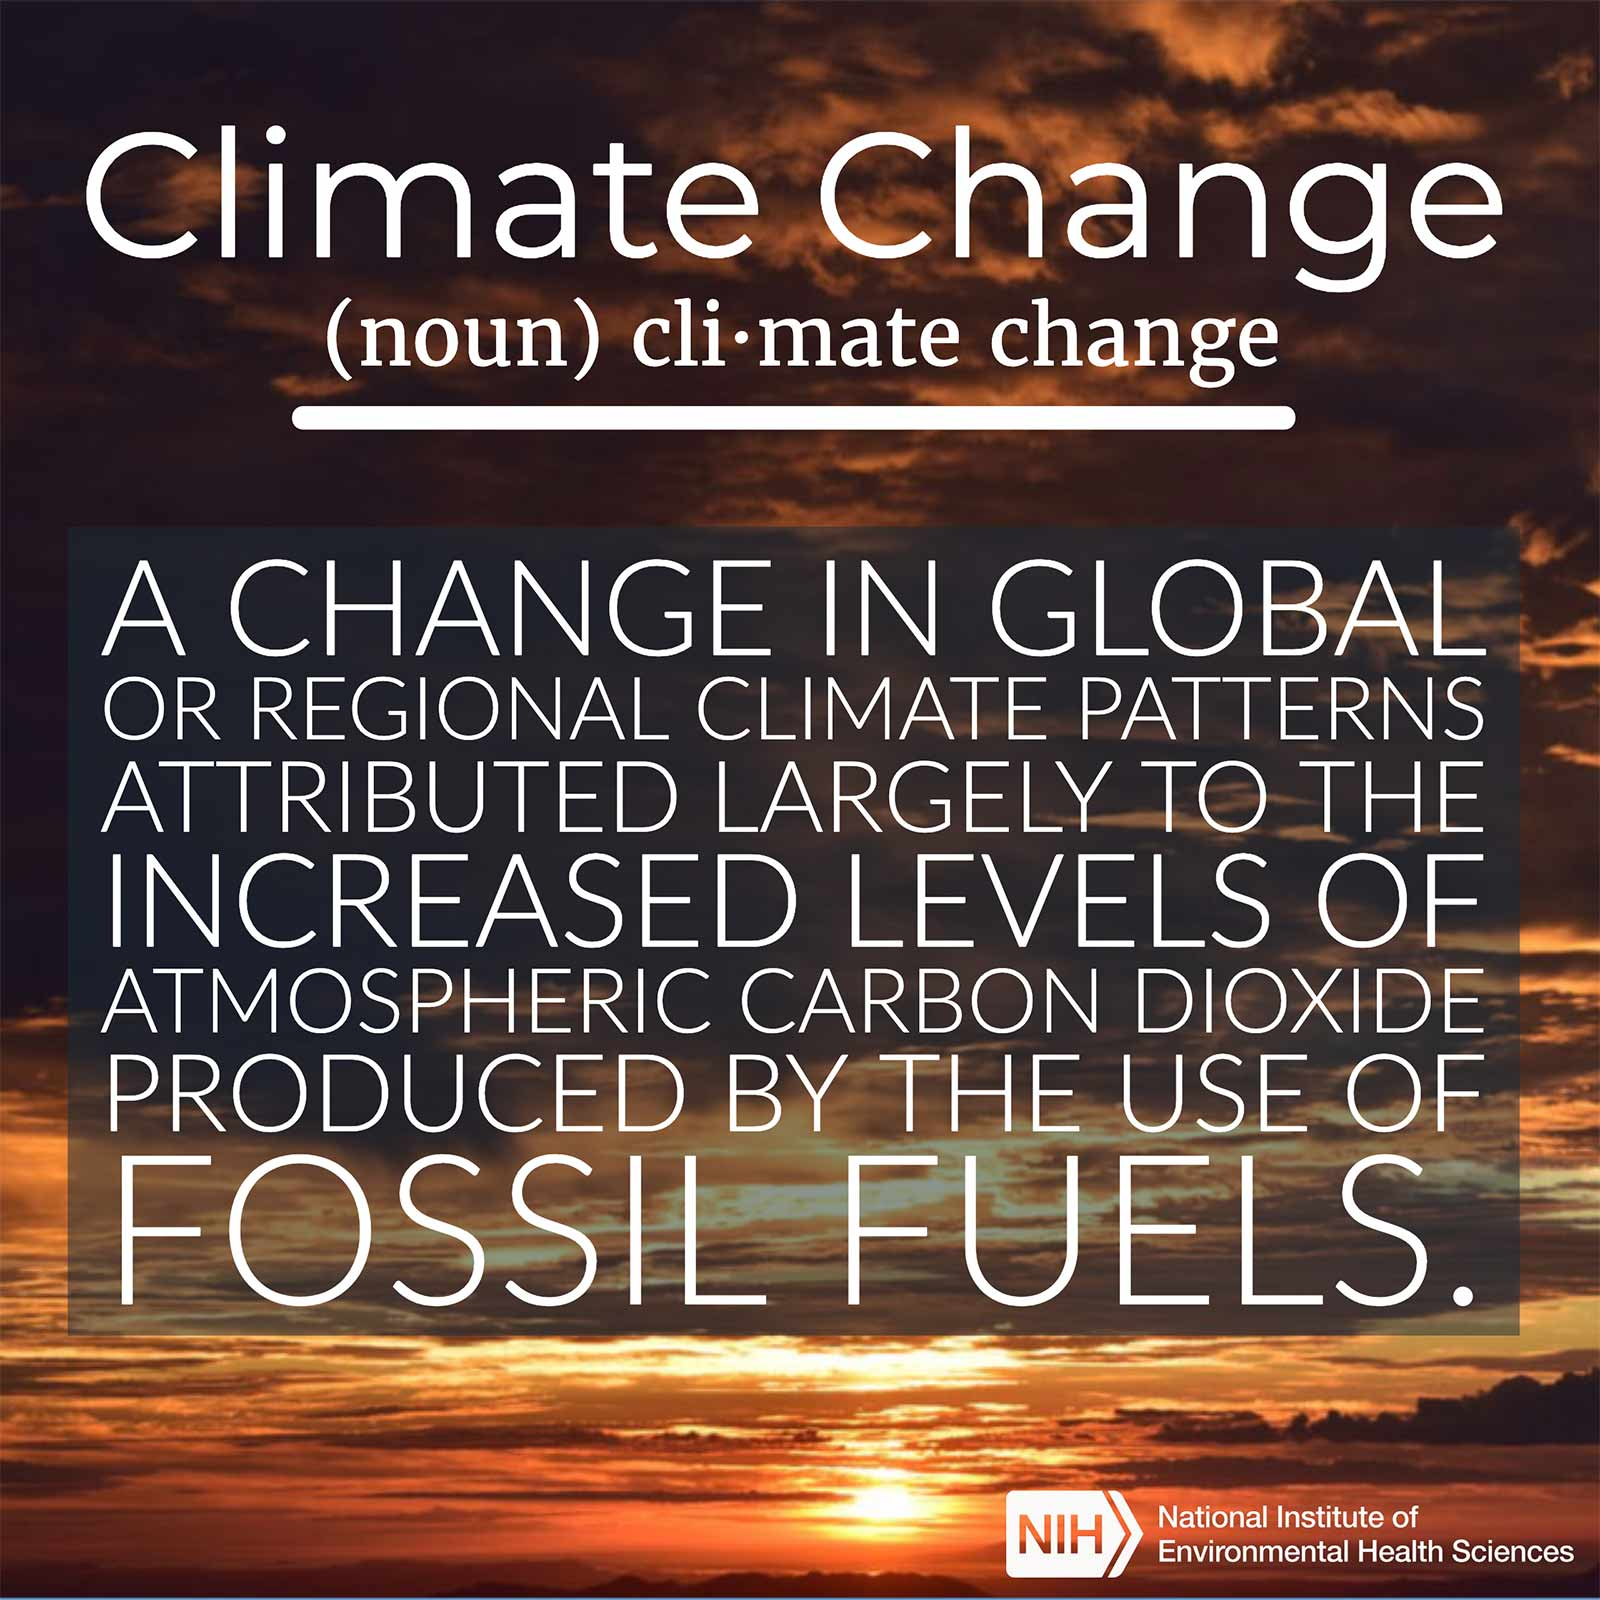 Climate change (noun) defined as 'A change in global or regional climate patterns attributed largely to the increased levels of atmospheric carbon dioxide produced by the use of fossil fuels'